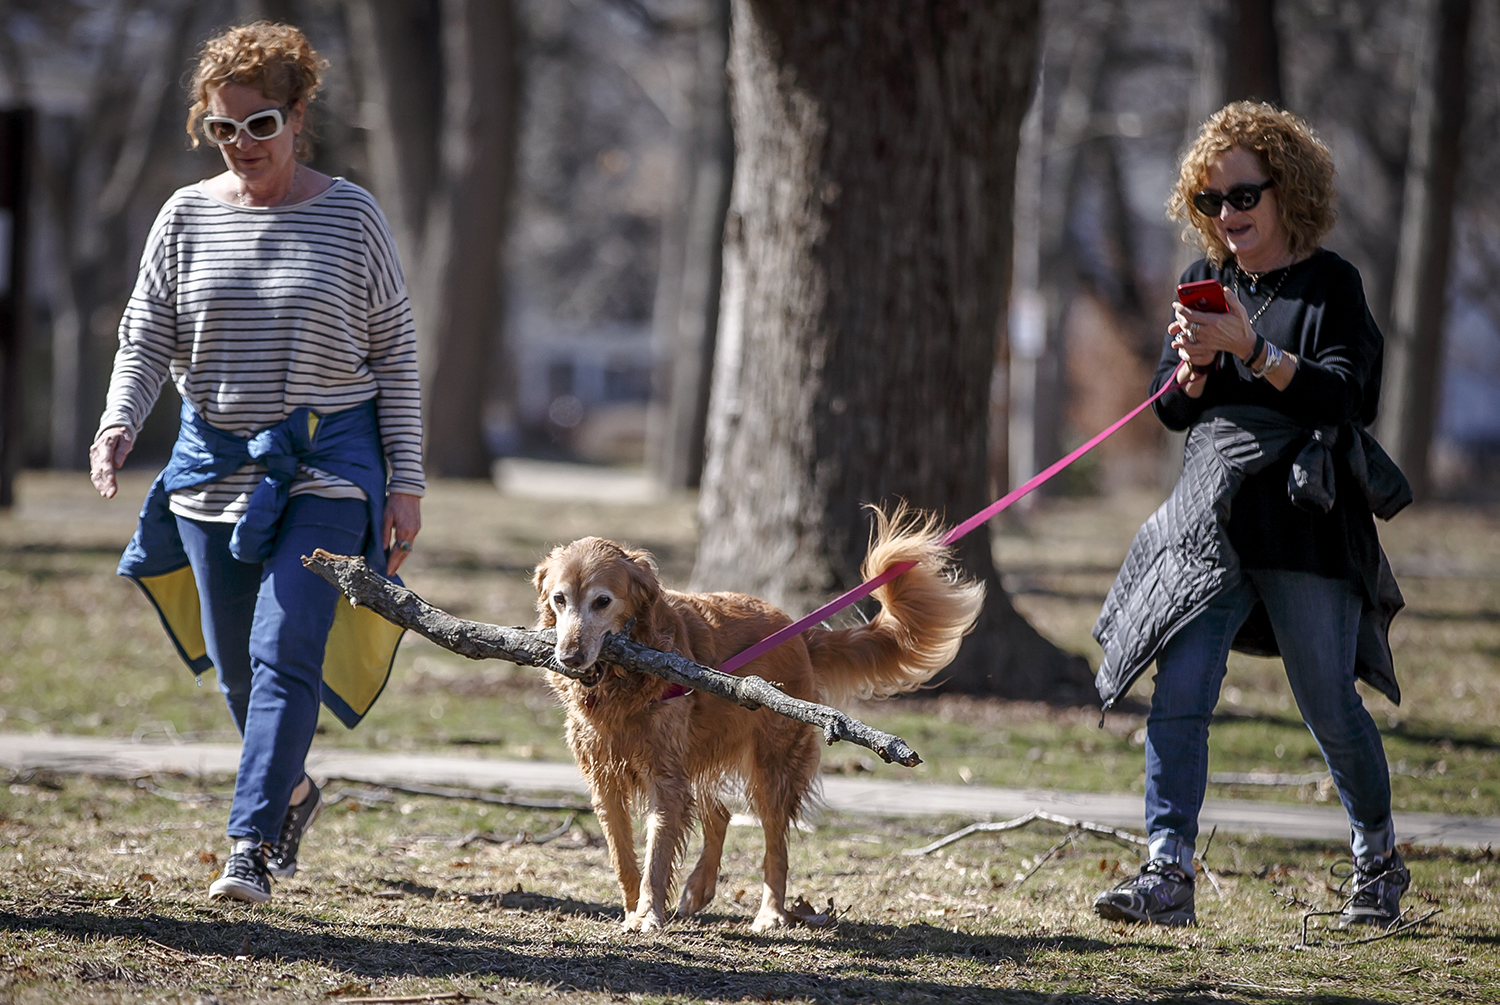 """""""As soon as she finds the perfect stick she heads for home,"""" said Patty Patia, right, as she walked her golden retriever, Gracie, along with her sister, Deborah Staley, left, in Washington Park, Monday, Feb. 26, 2018, in Springfield, Ill. Gracie picked up the stick after taking a dip in the lower lagoon and was carrying it through the park on her way home as temperatures climbed into the upper 50s with abundant sunshine. [Justin L. Fowler/The State Journal-Register]"""